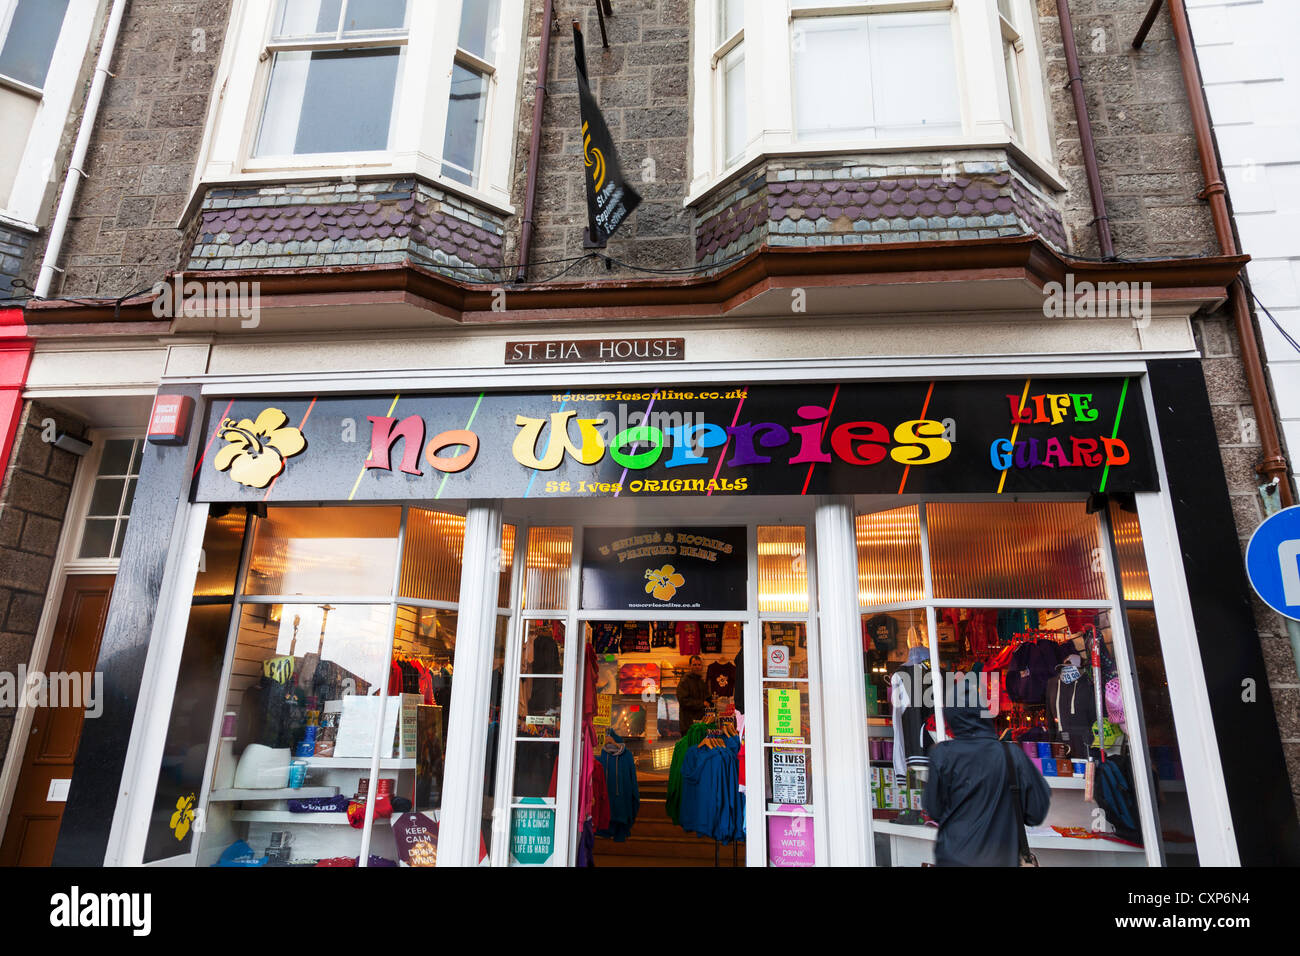 St Ives Cornwall No Worries shop selling clothes and accessories - Stock Image